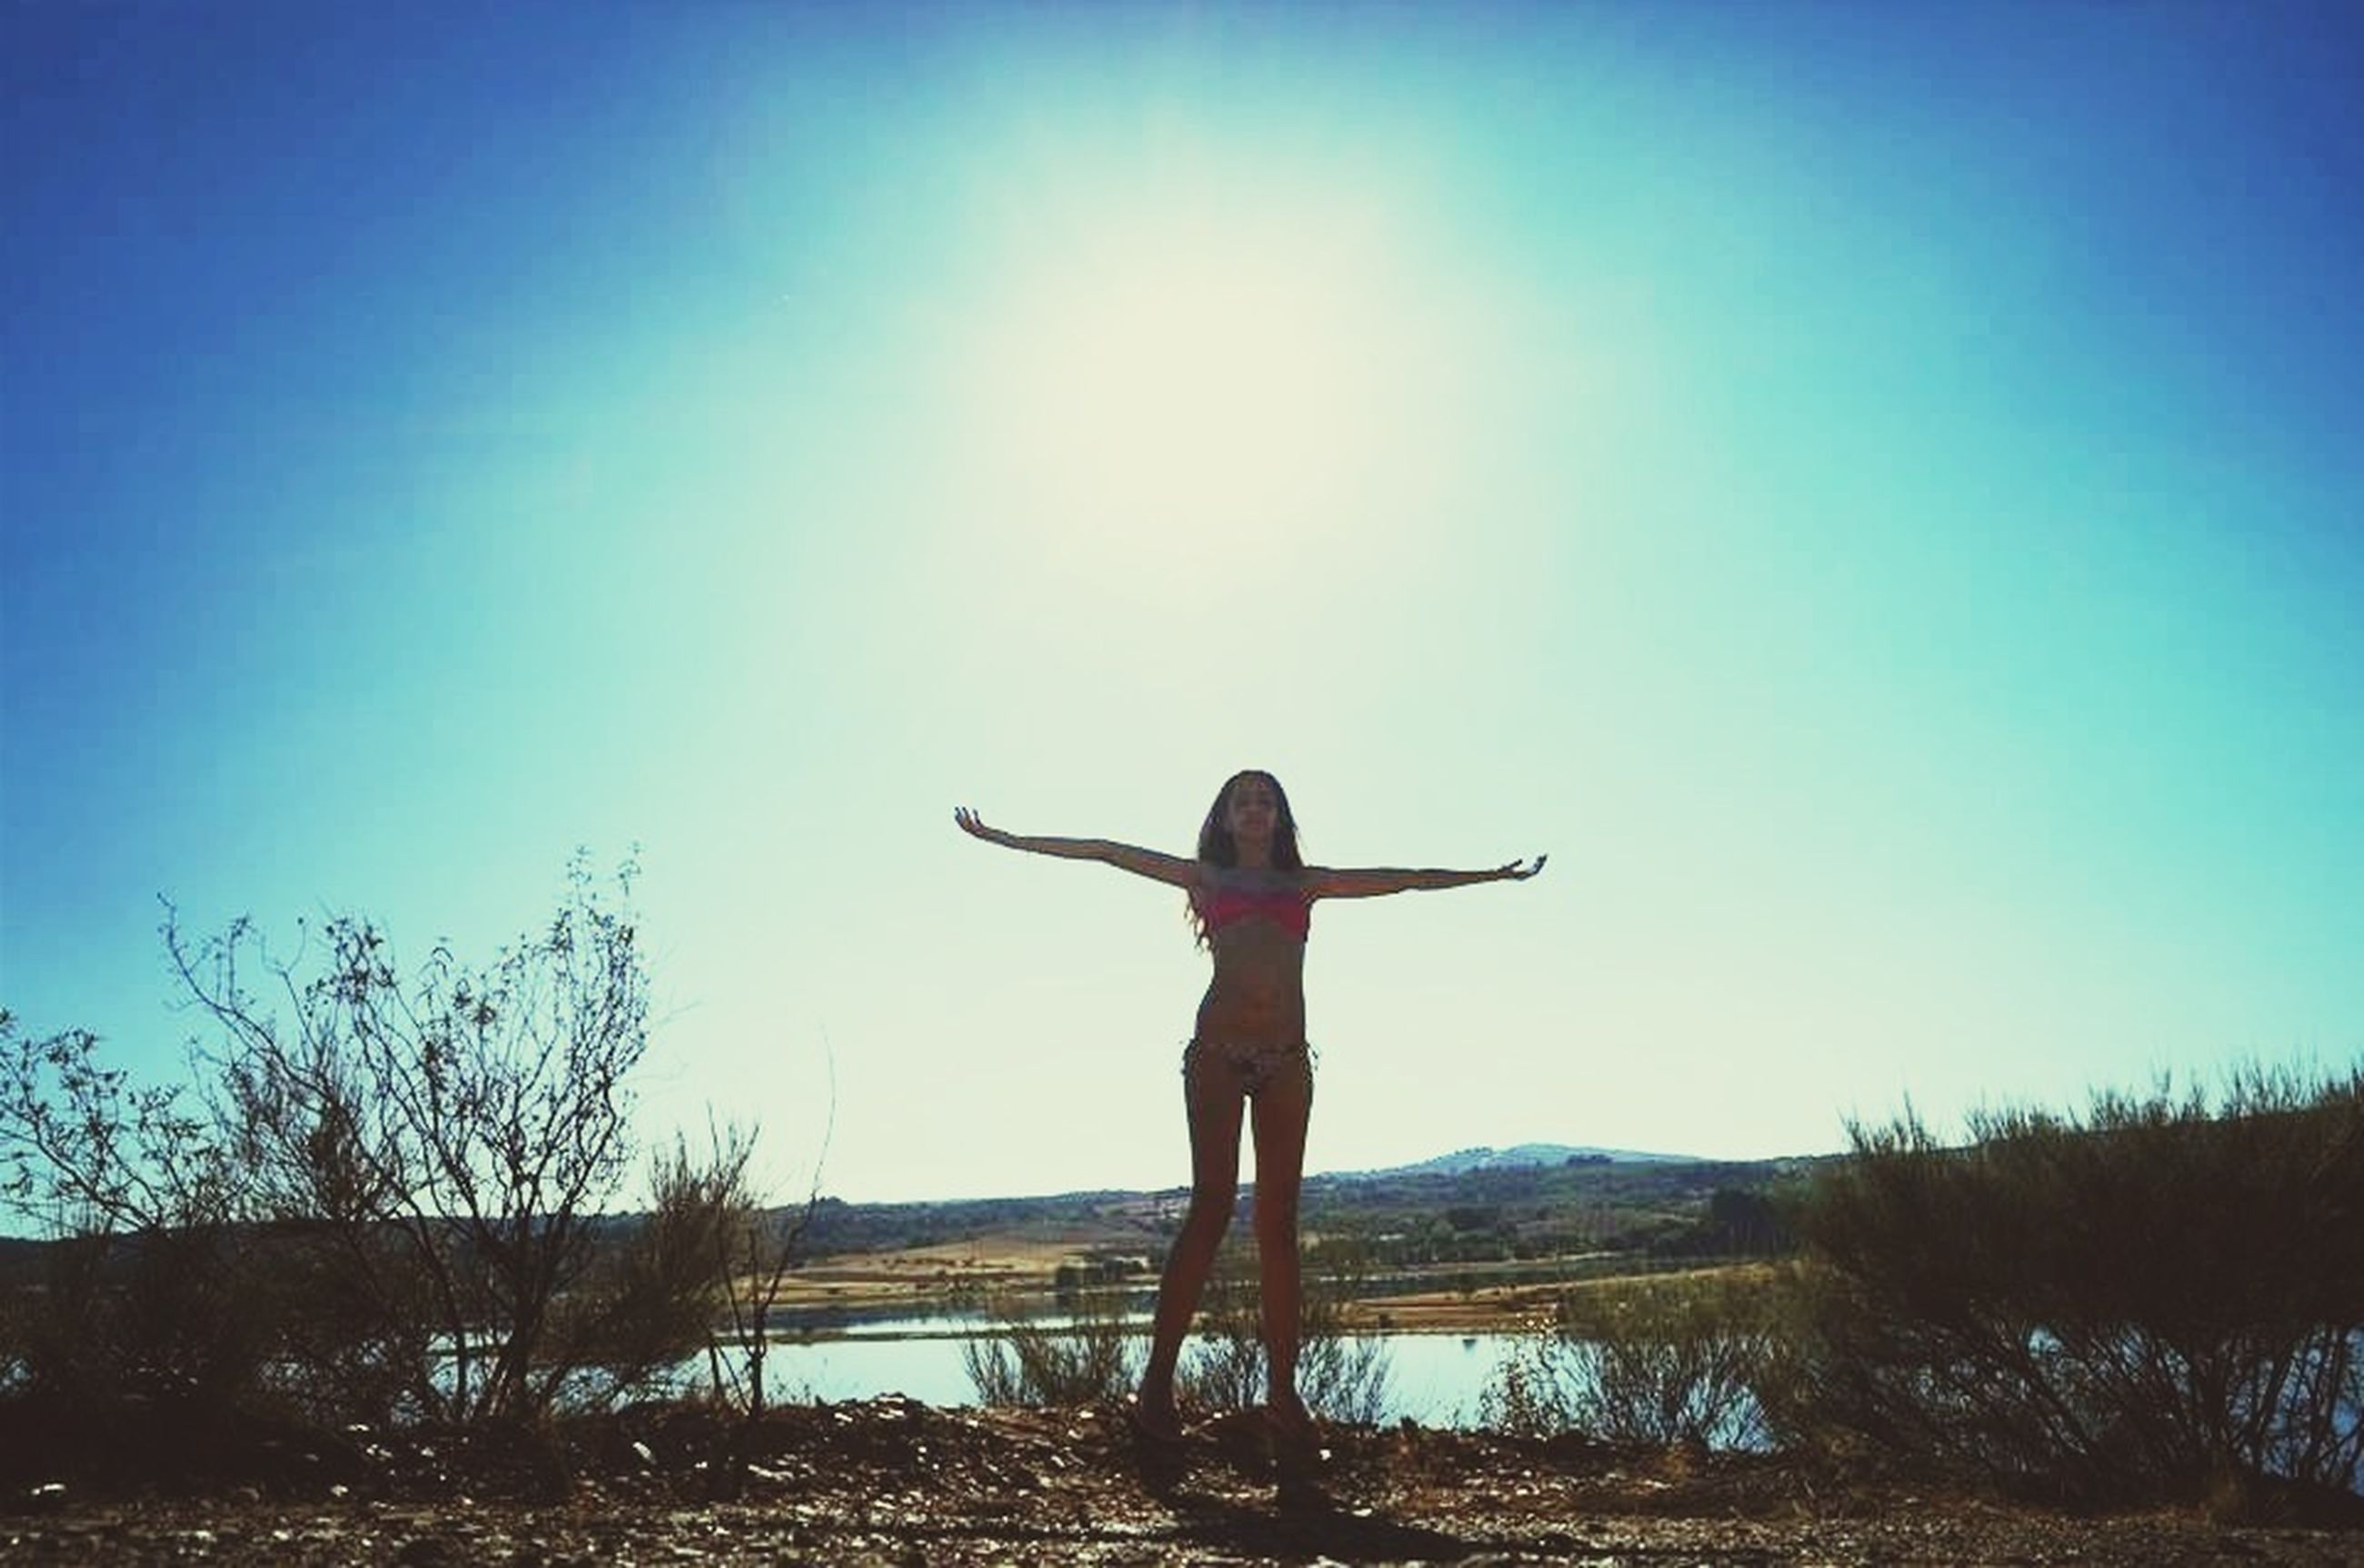 full length, lifestyles, leisure activity, standing, water, clear sky, arms outstretched, blue, casual clothing, sky, tranquility, young adult, tranquil scene, rear view, sunlight, three quarter length, nature, arms raised